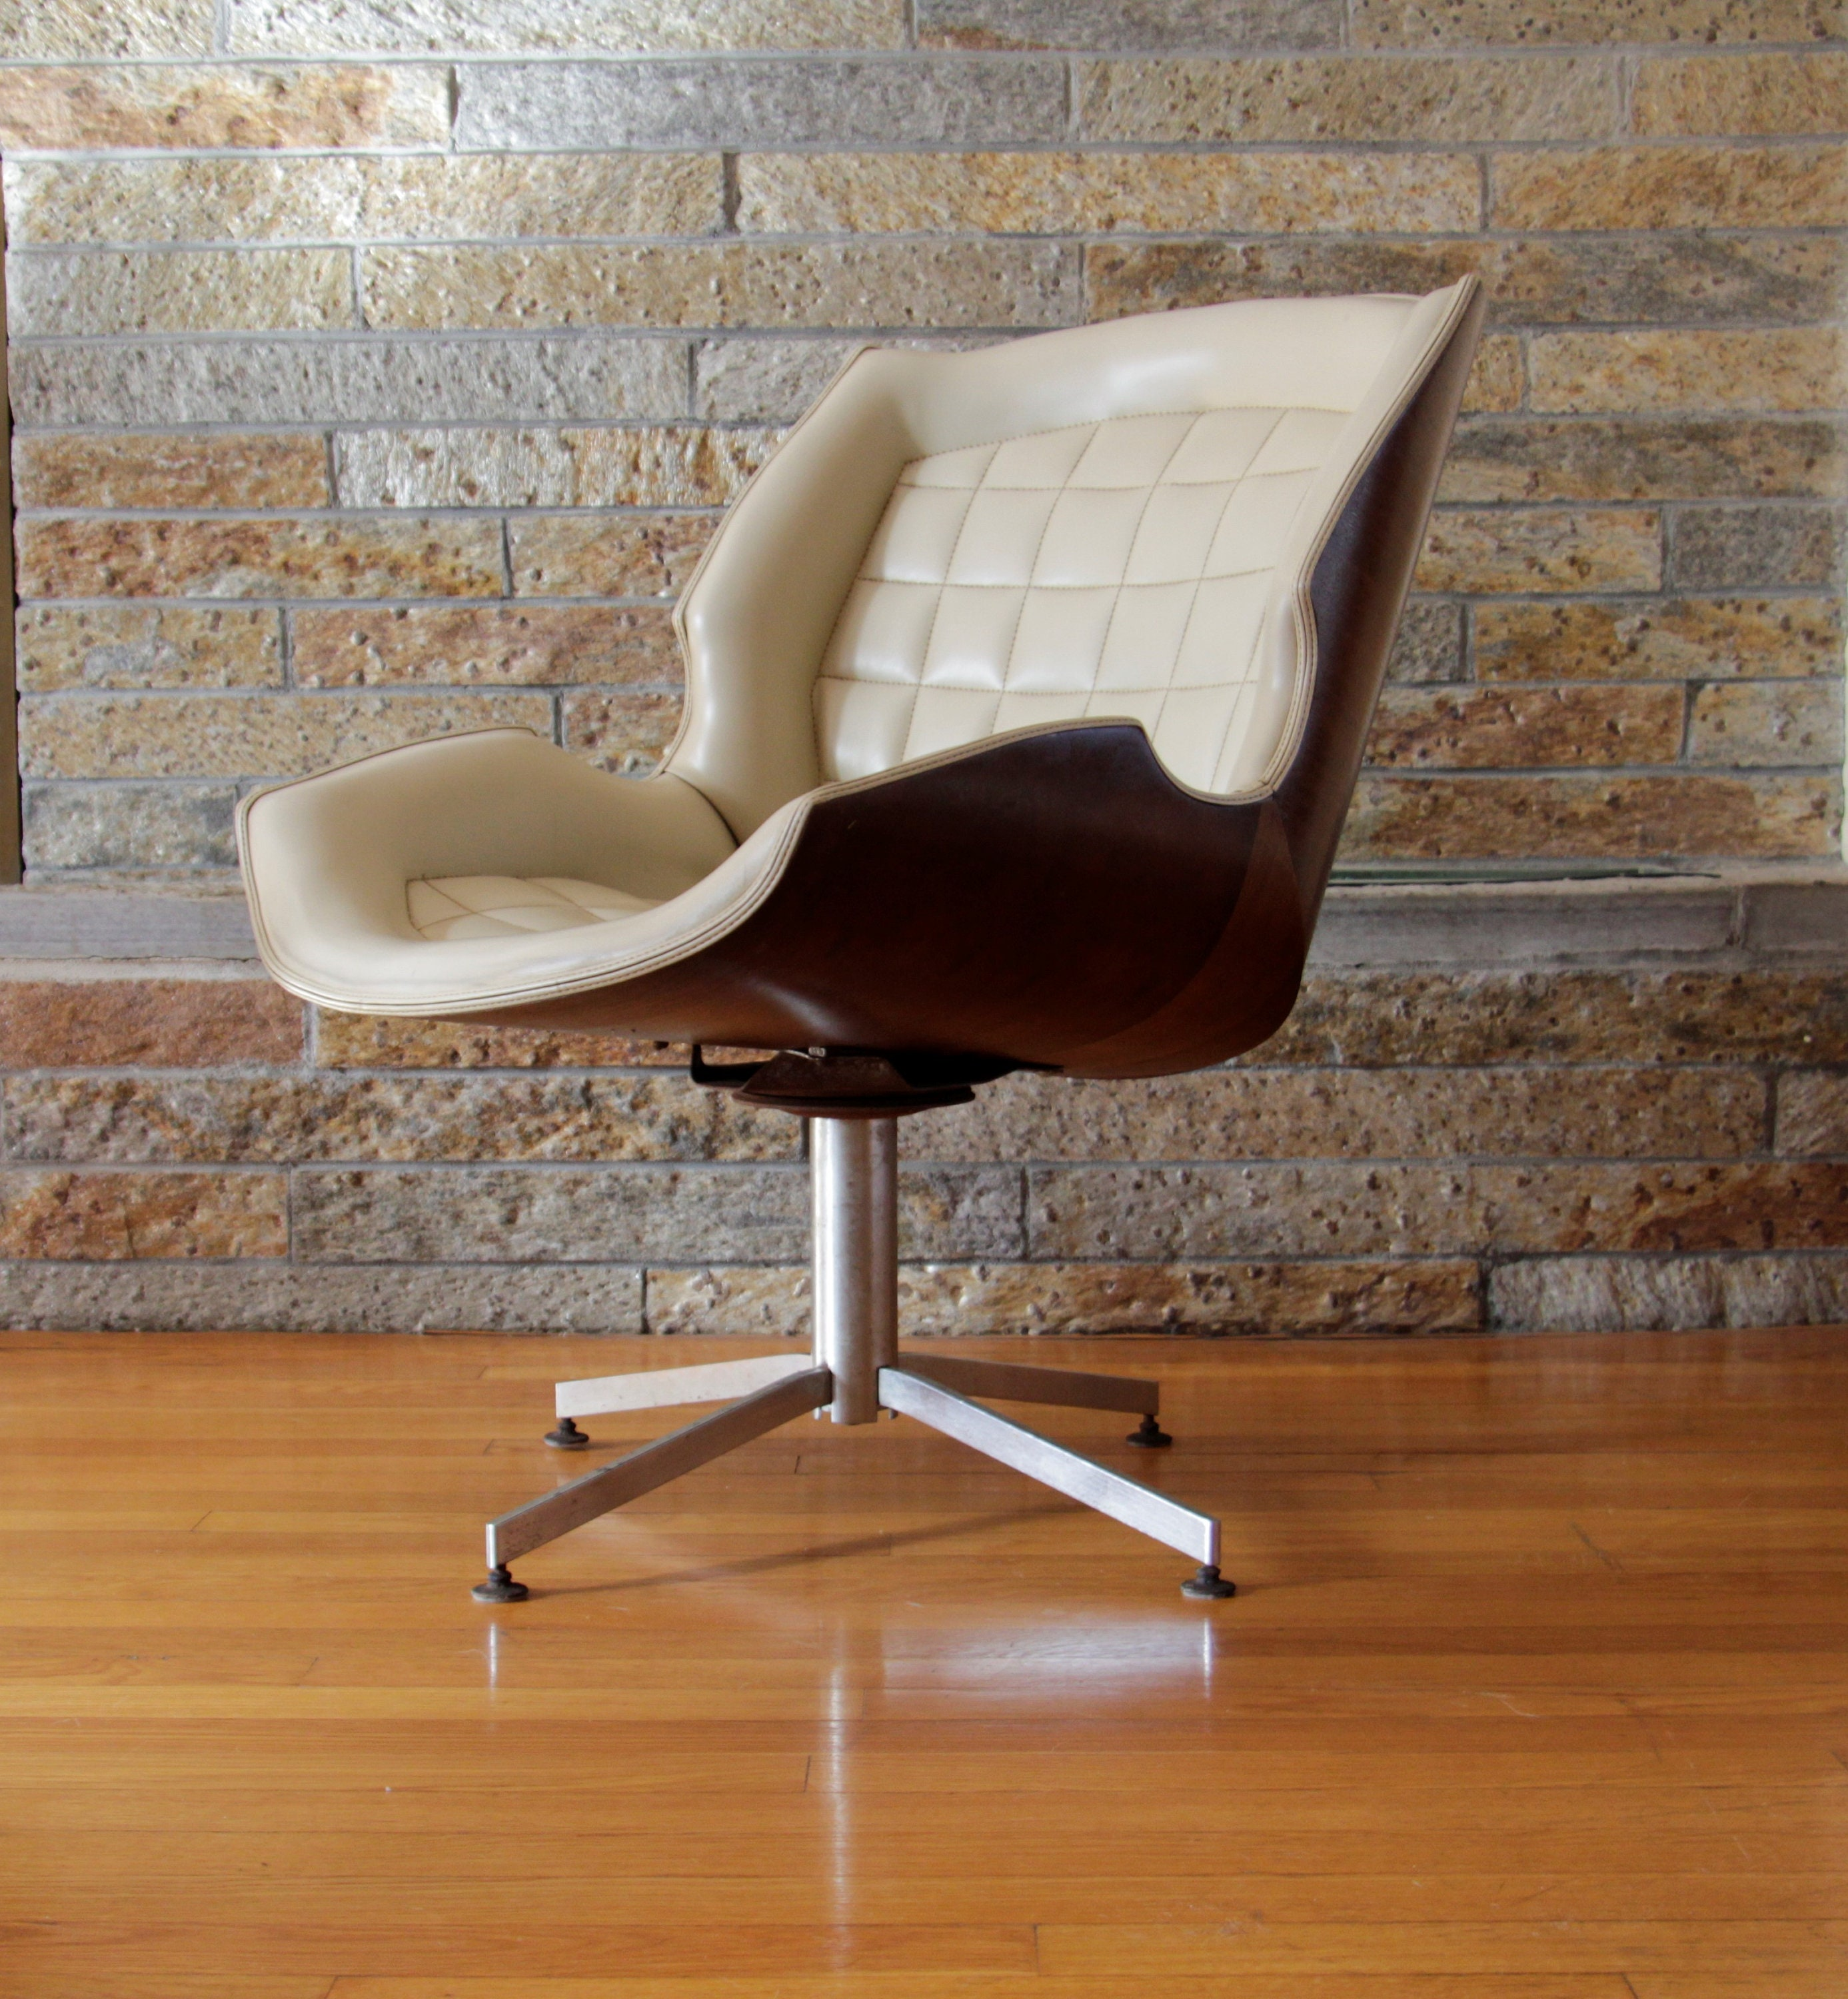 Image of: Mid Century Modern Swivel Chair By George Mulhauser Etsy